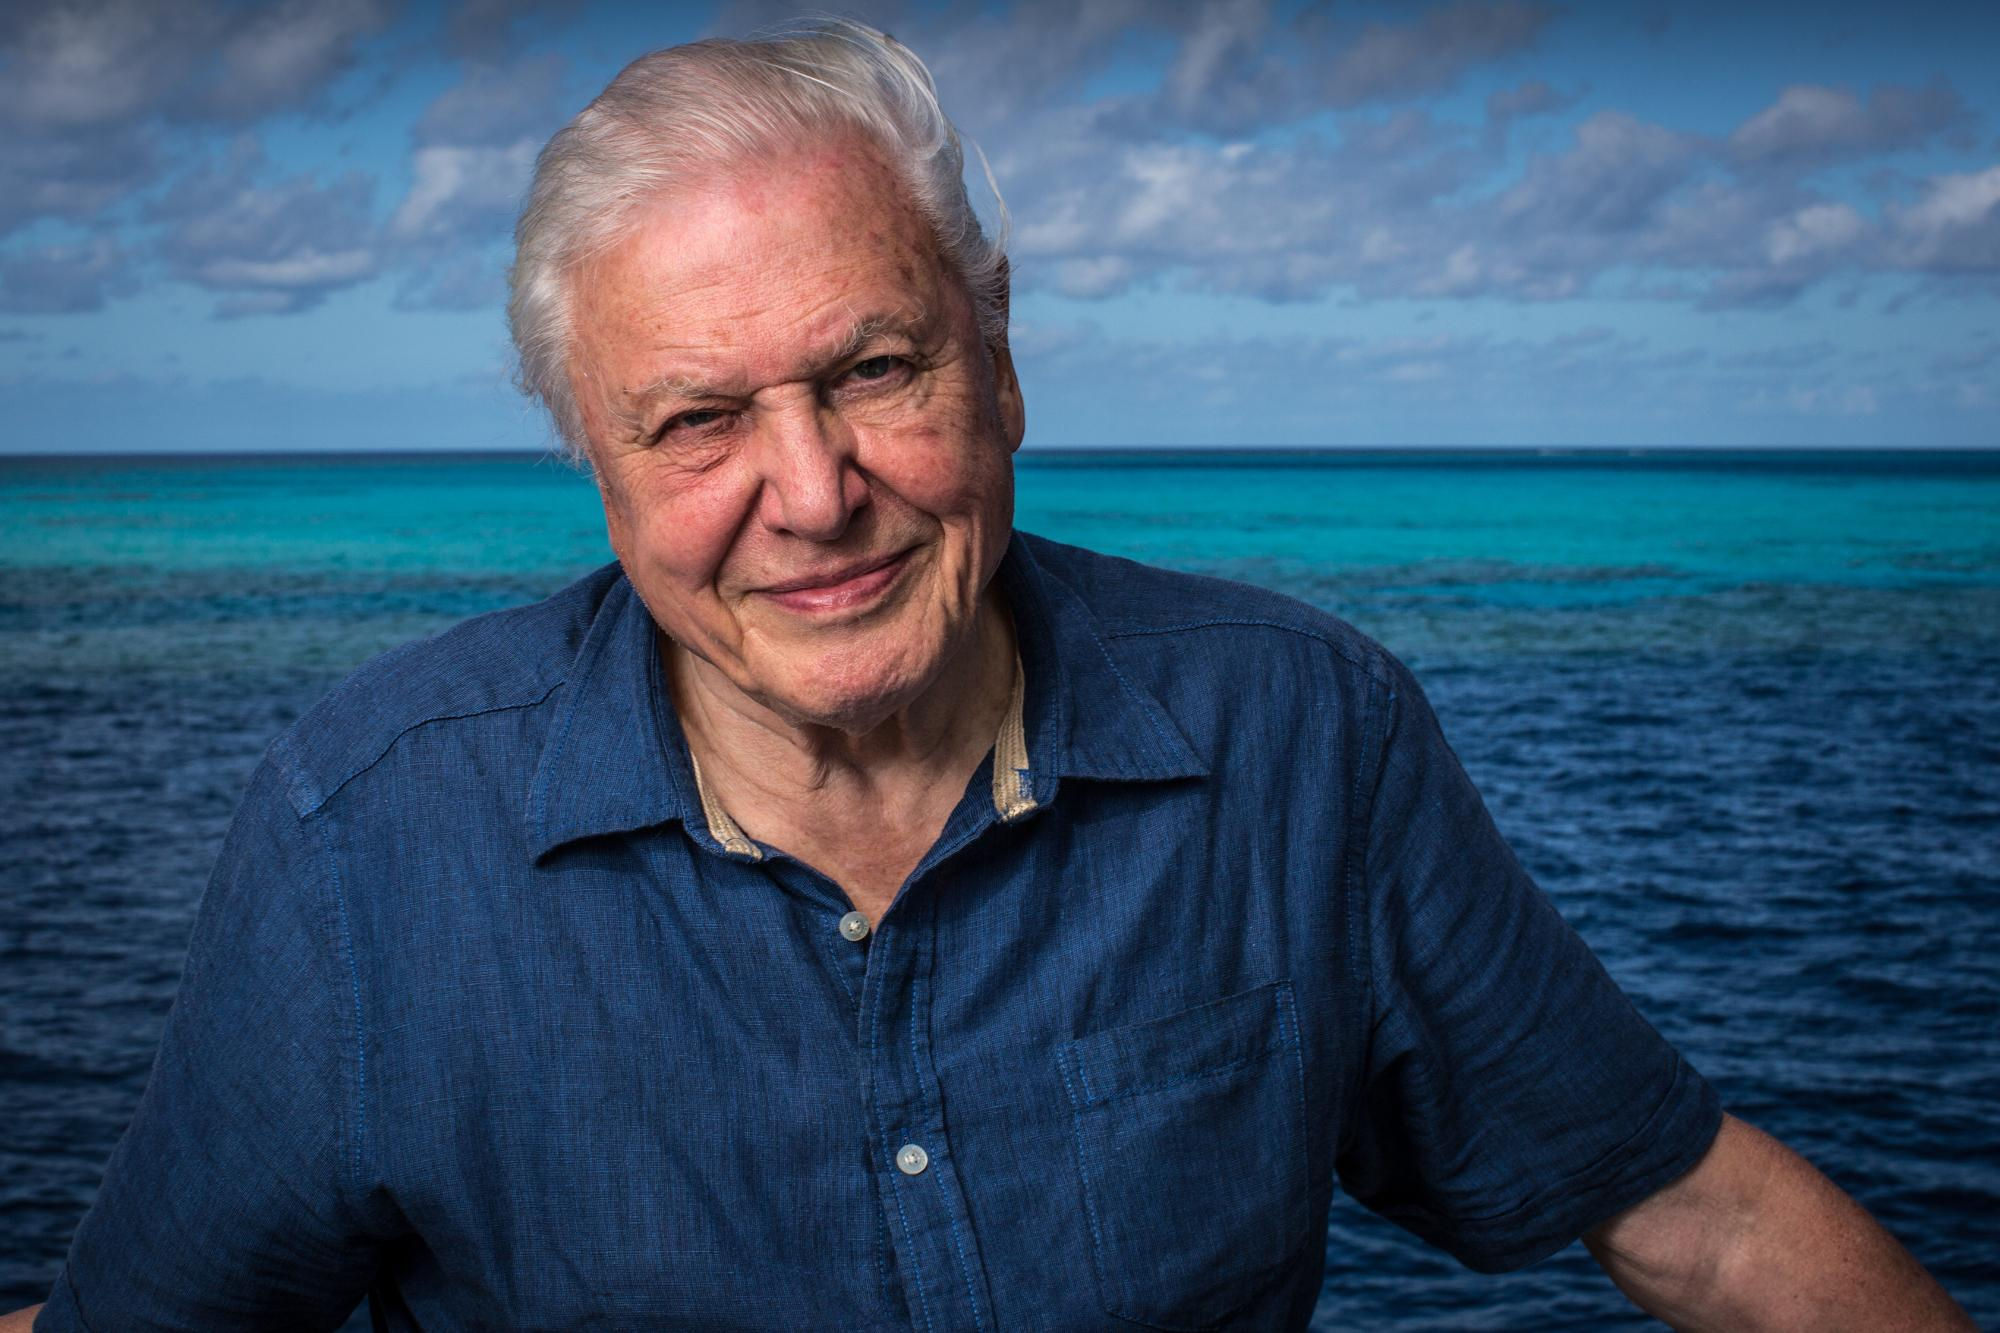 David Attenborough on the Great Barrier Reef 9 (c) Atlantic Productions